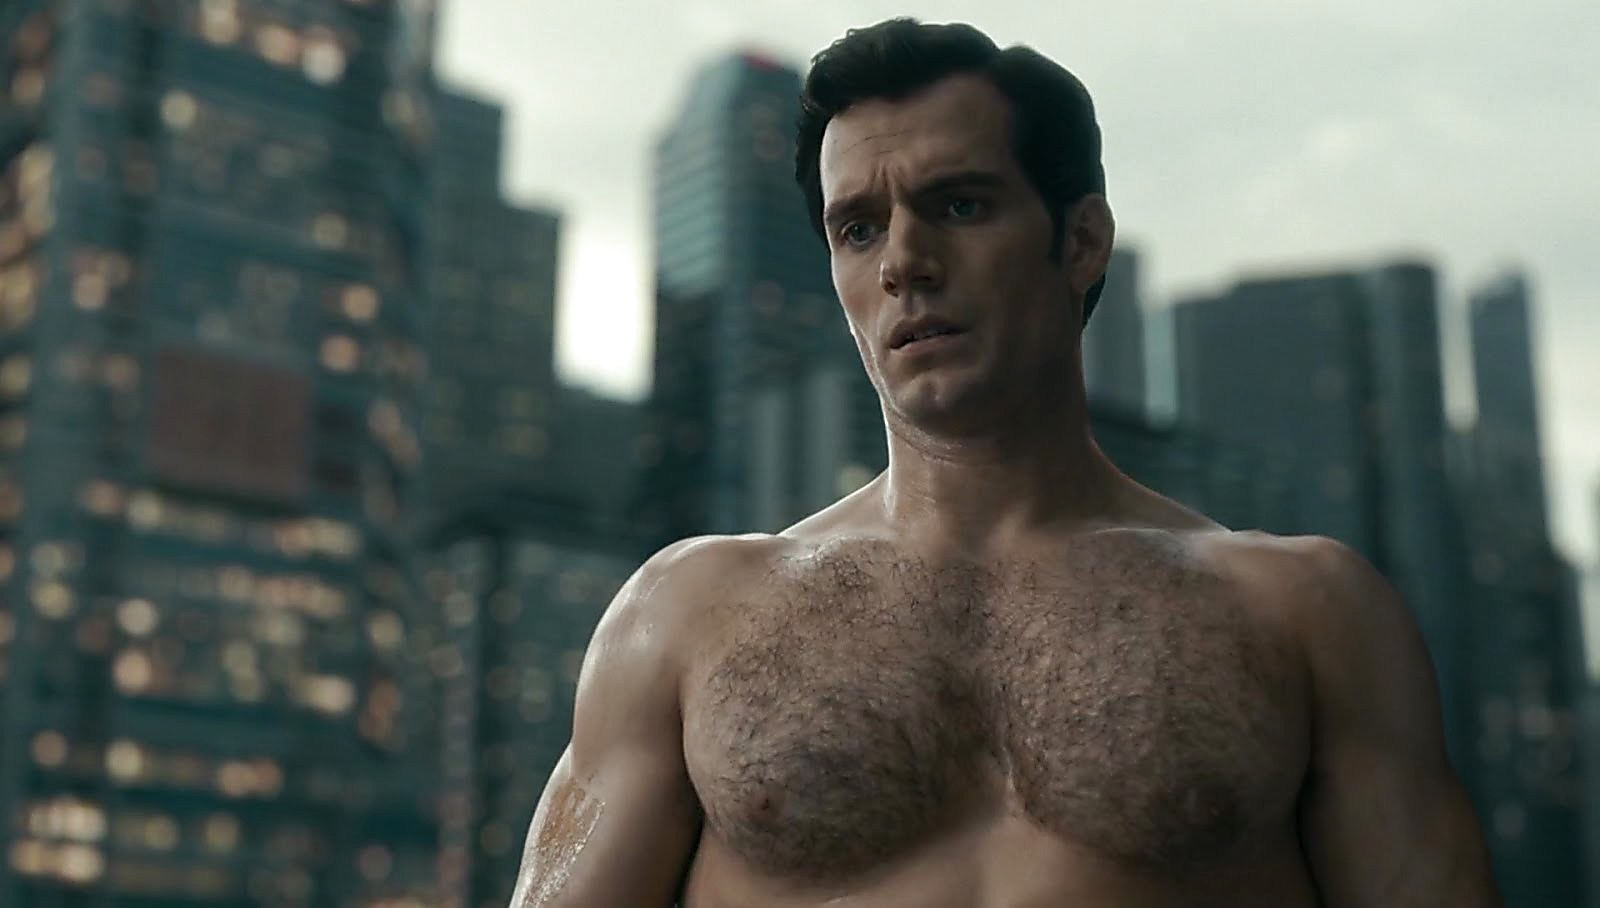 Henry Cavill sexy shirtless scene February 13, 2018, 11am